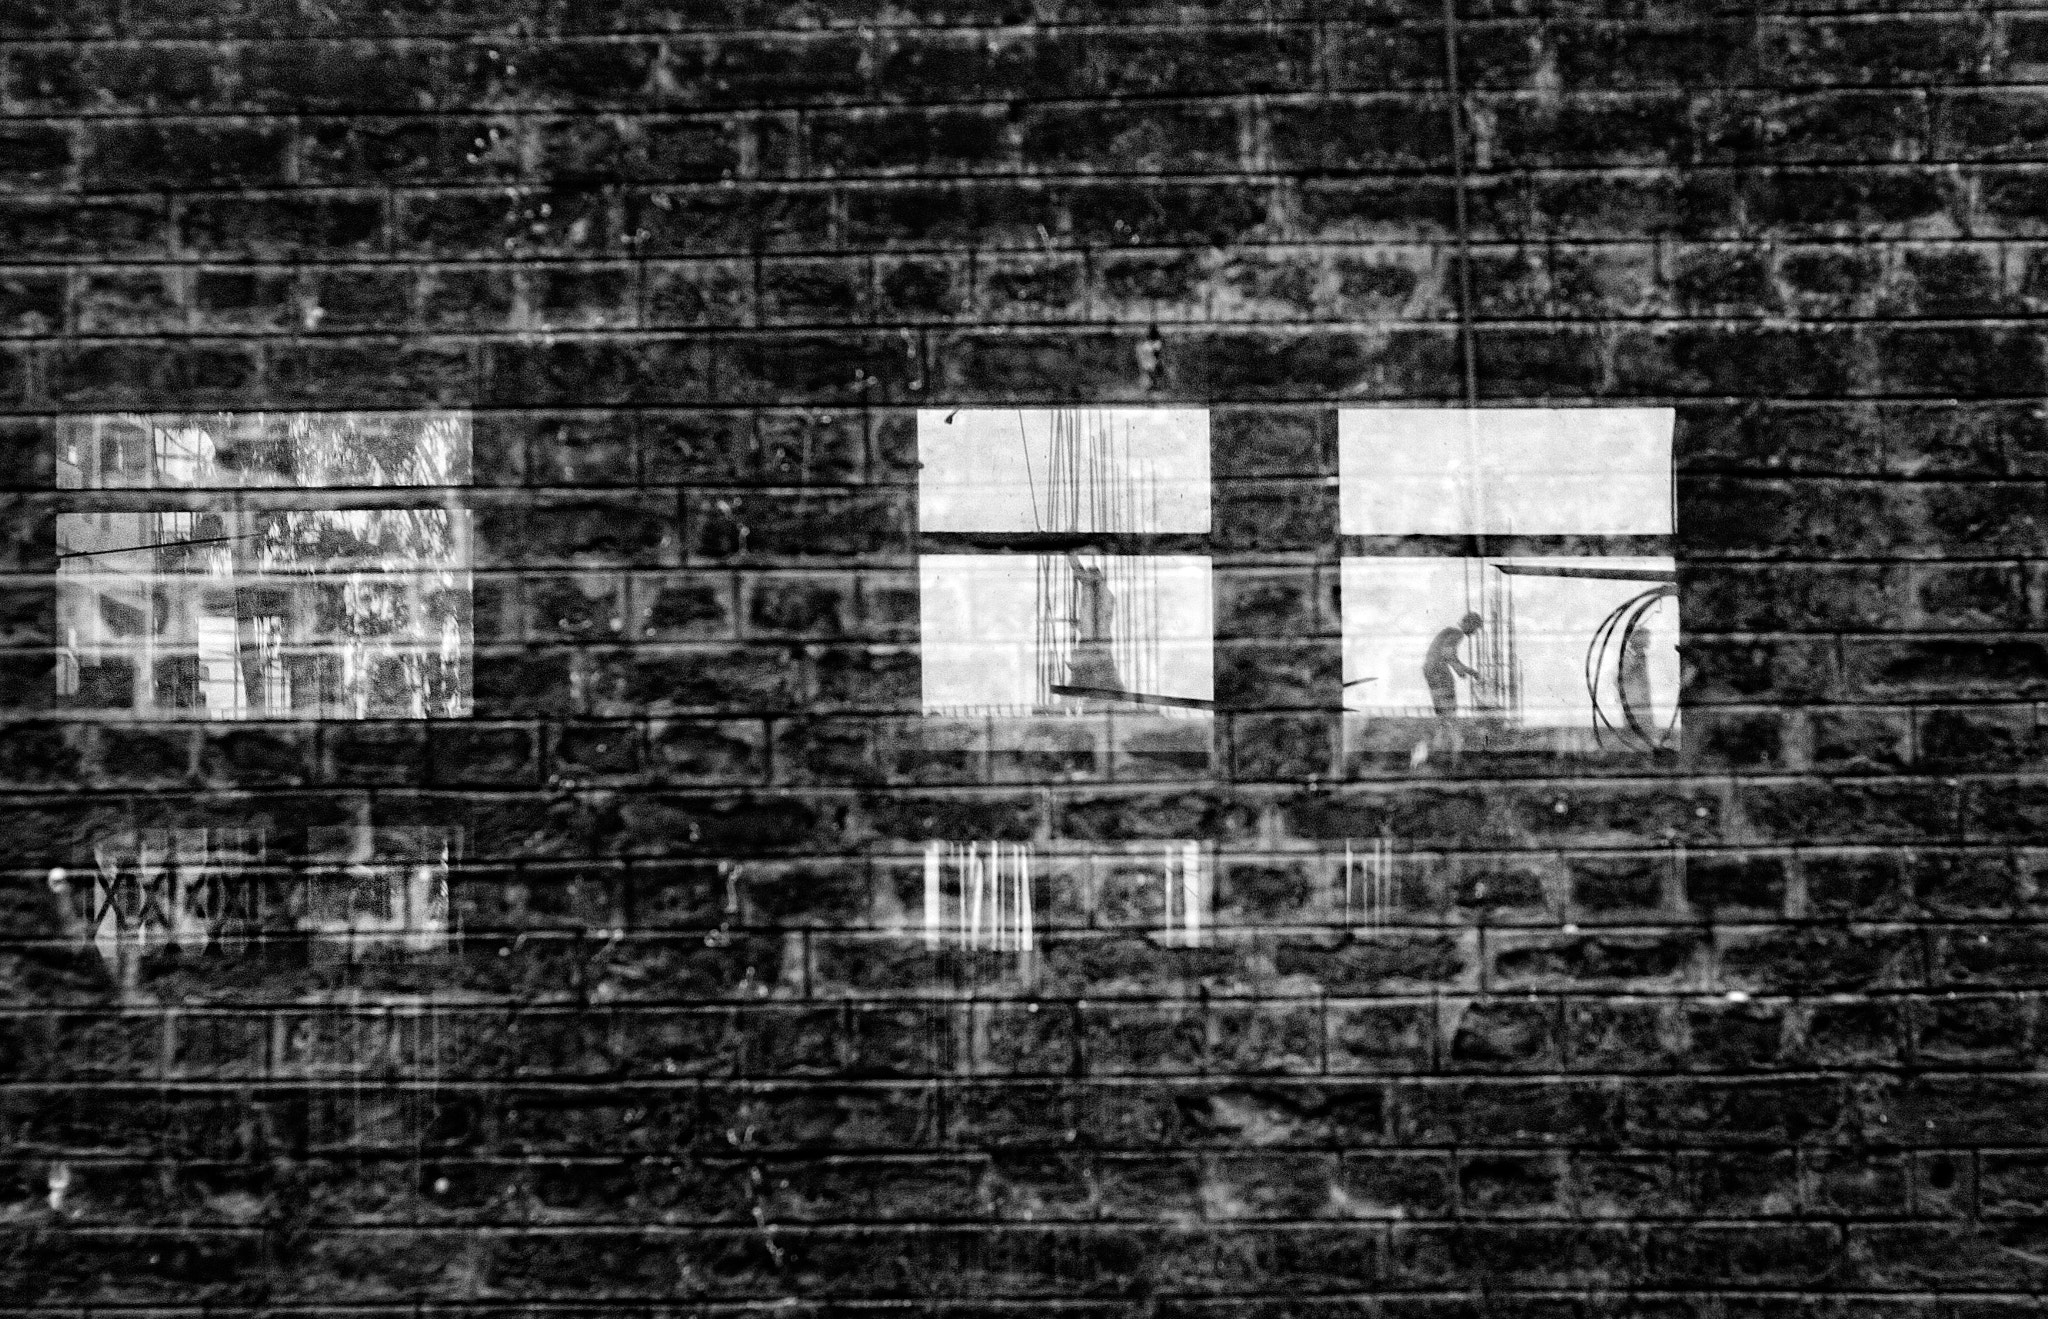 Photograph Broken Frames on the Wall by Vidhu S on 500px